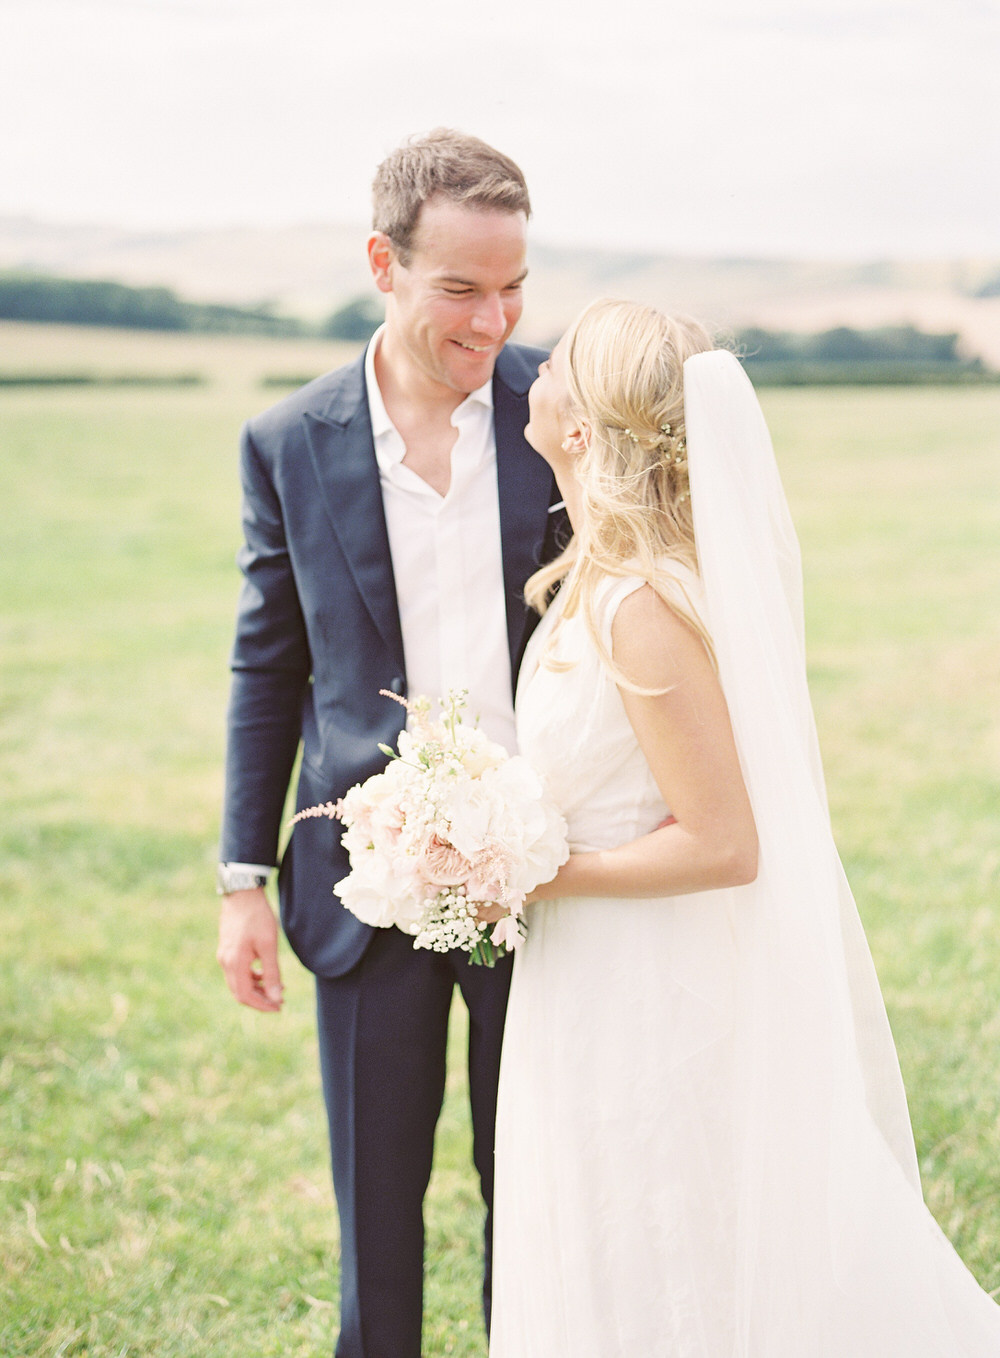 kimmeridge wedding by imogen xiana-541.jpg